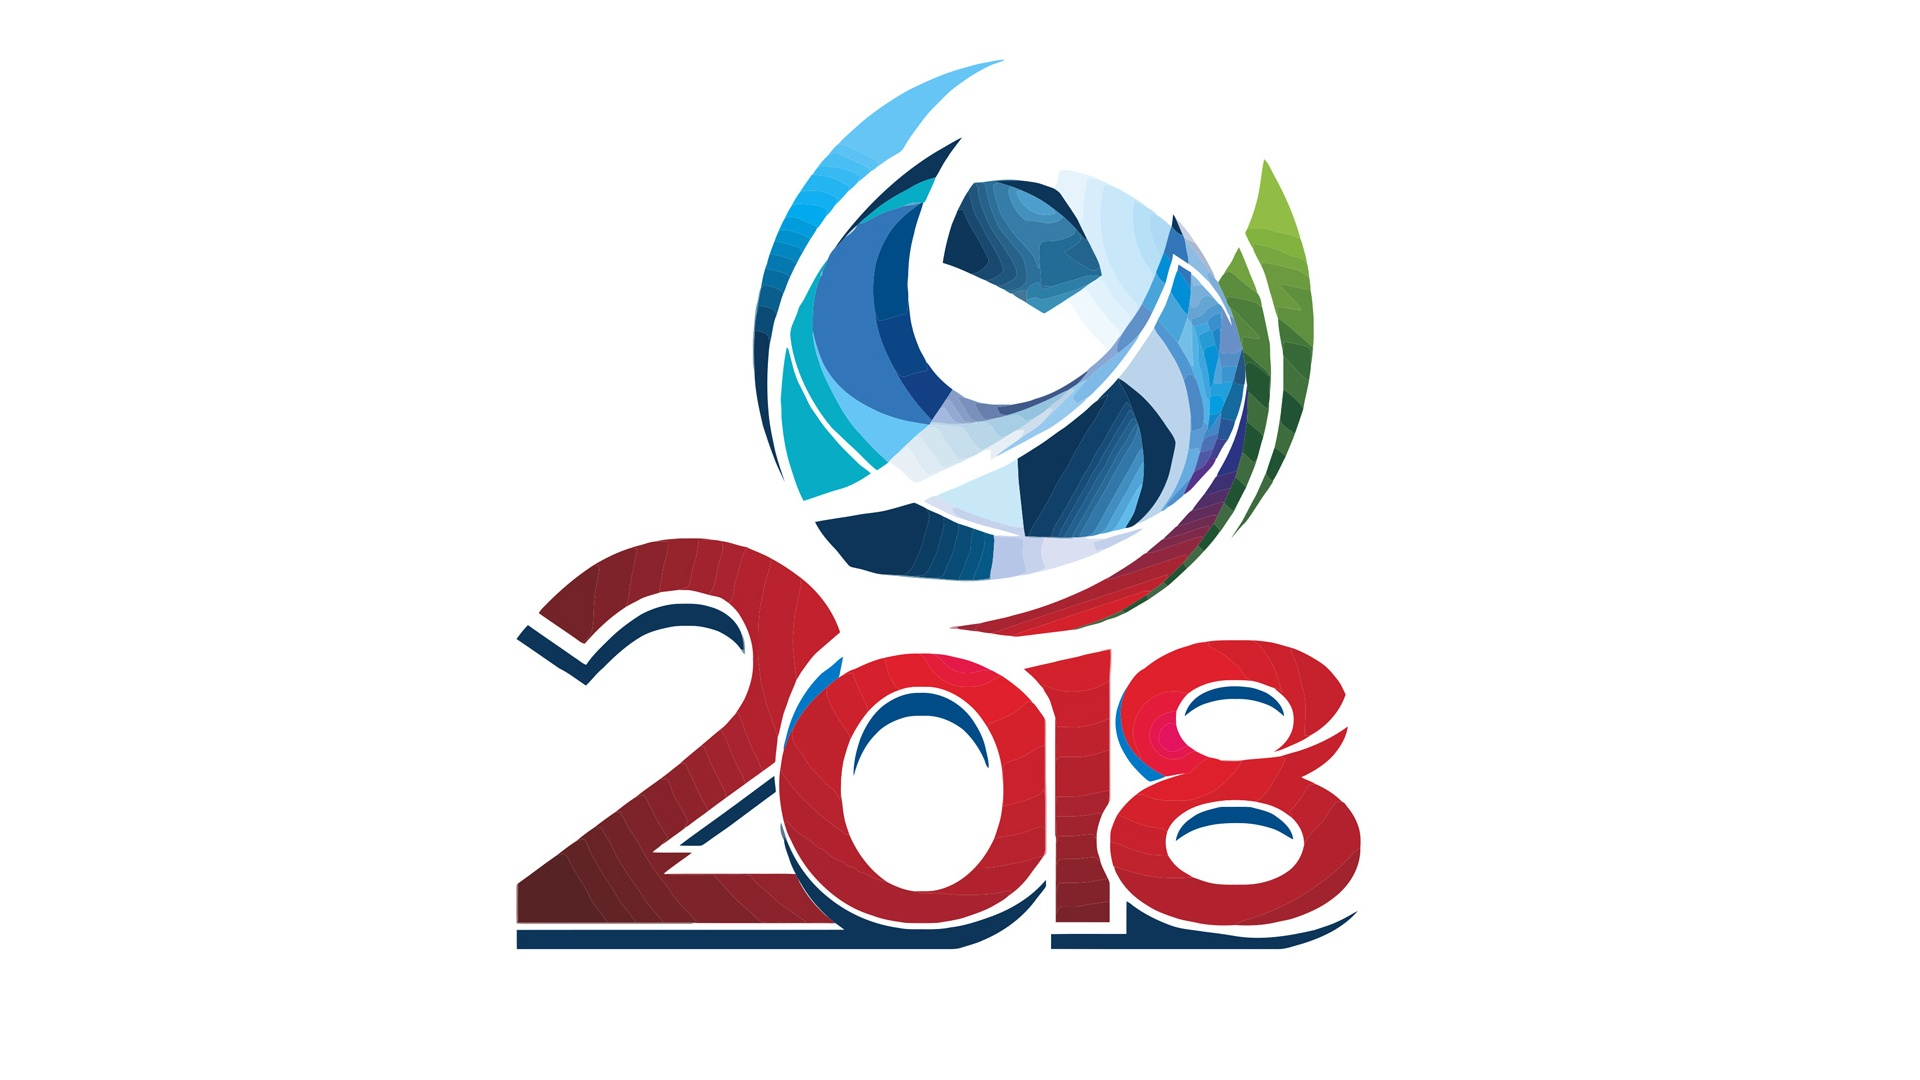 Ea sports fifa 17 hd wallpapers in jpg format for free download 2018 fifa world cup biocorpaavc